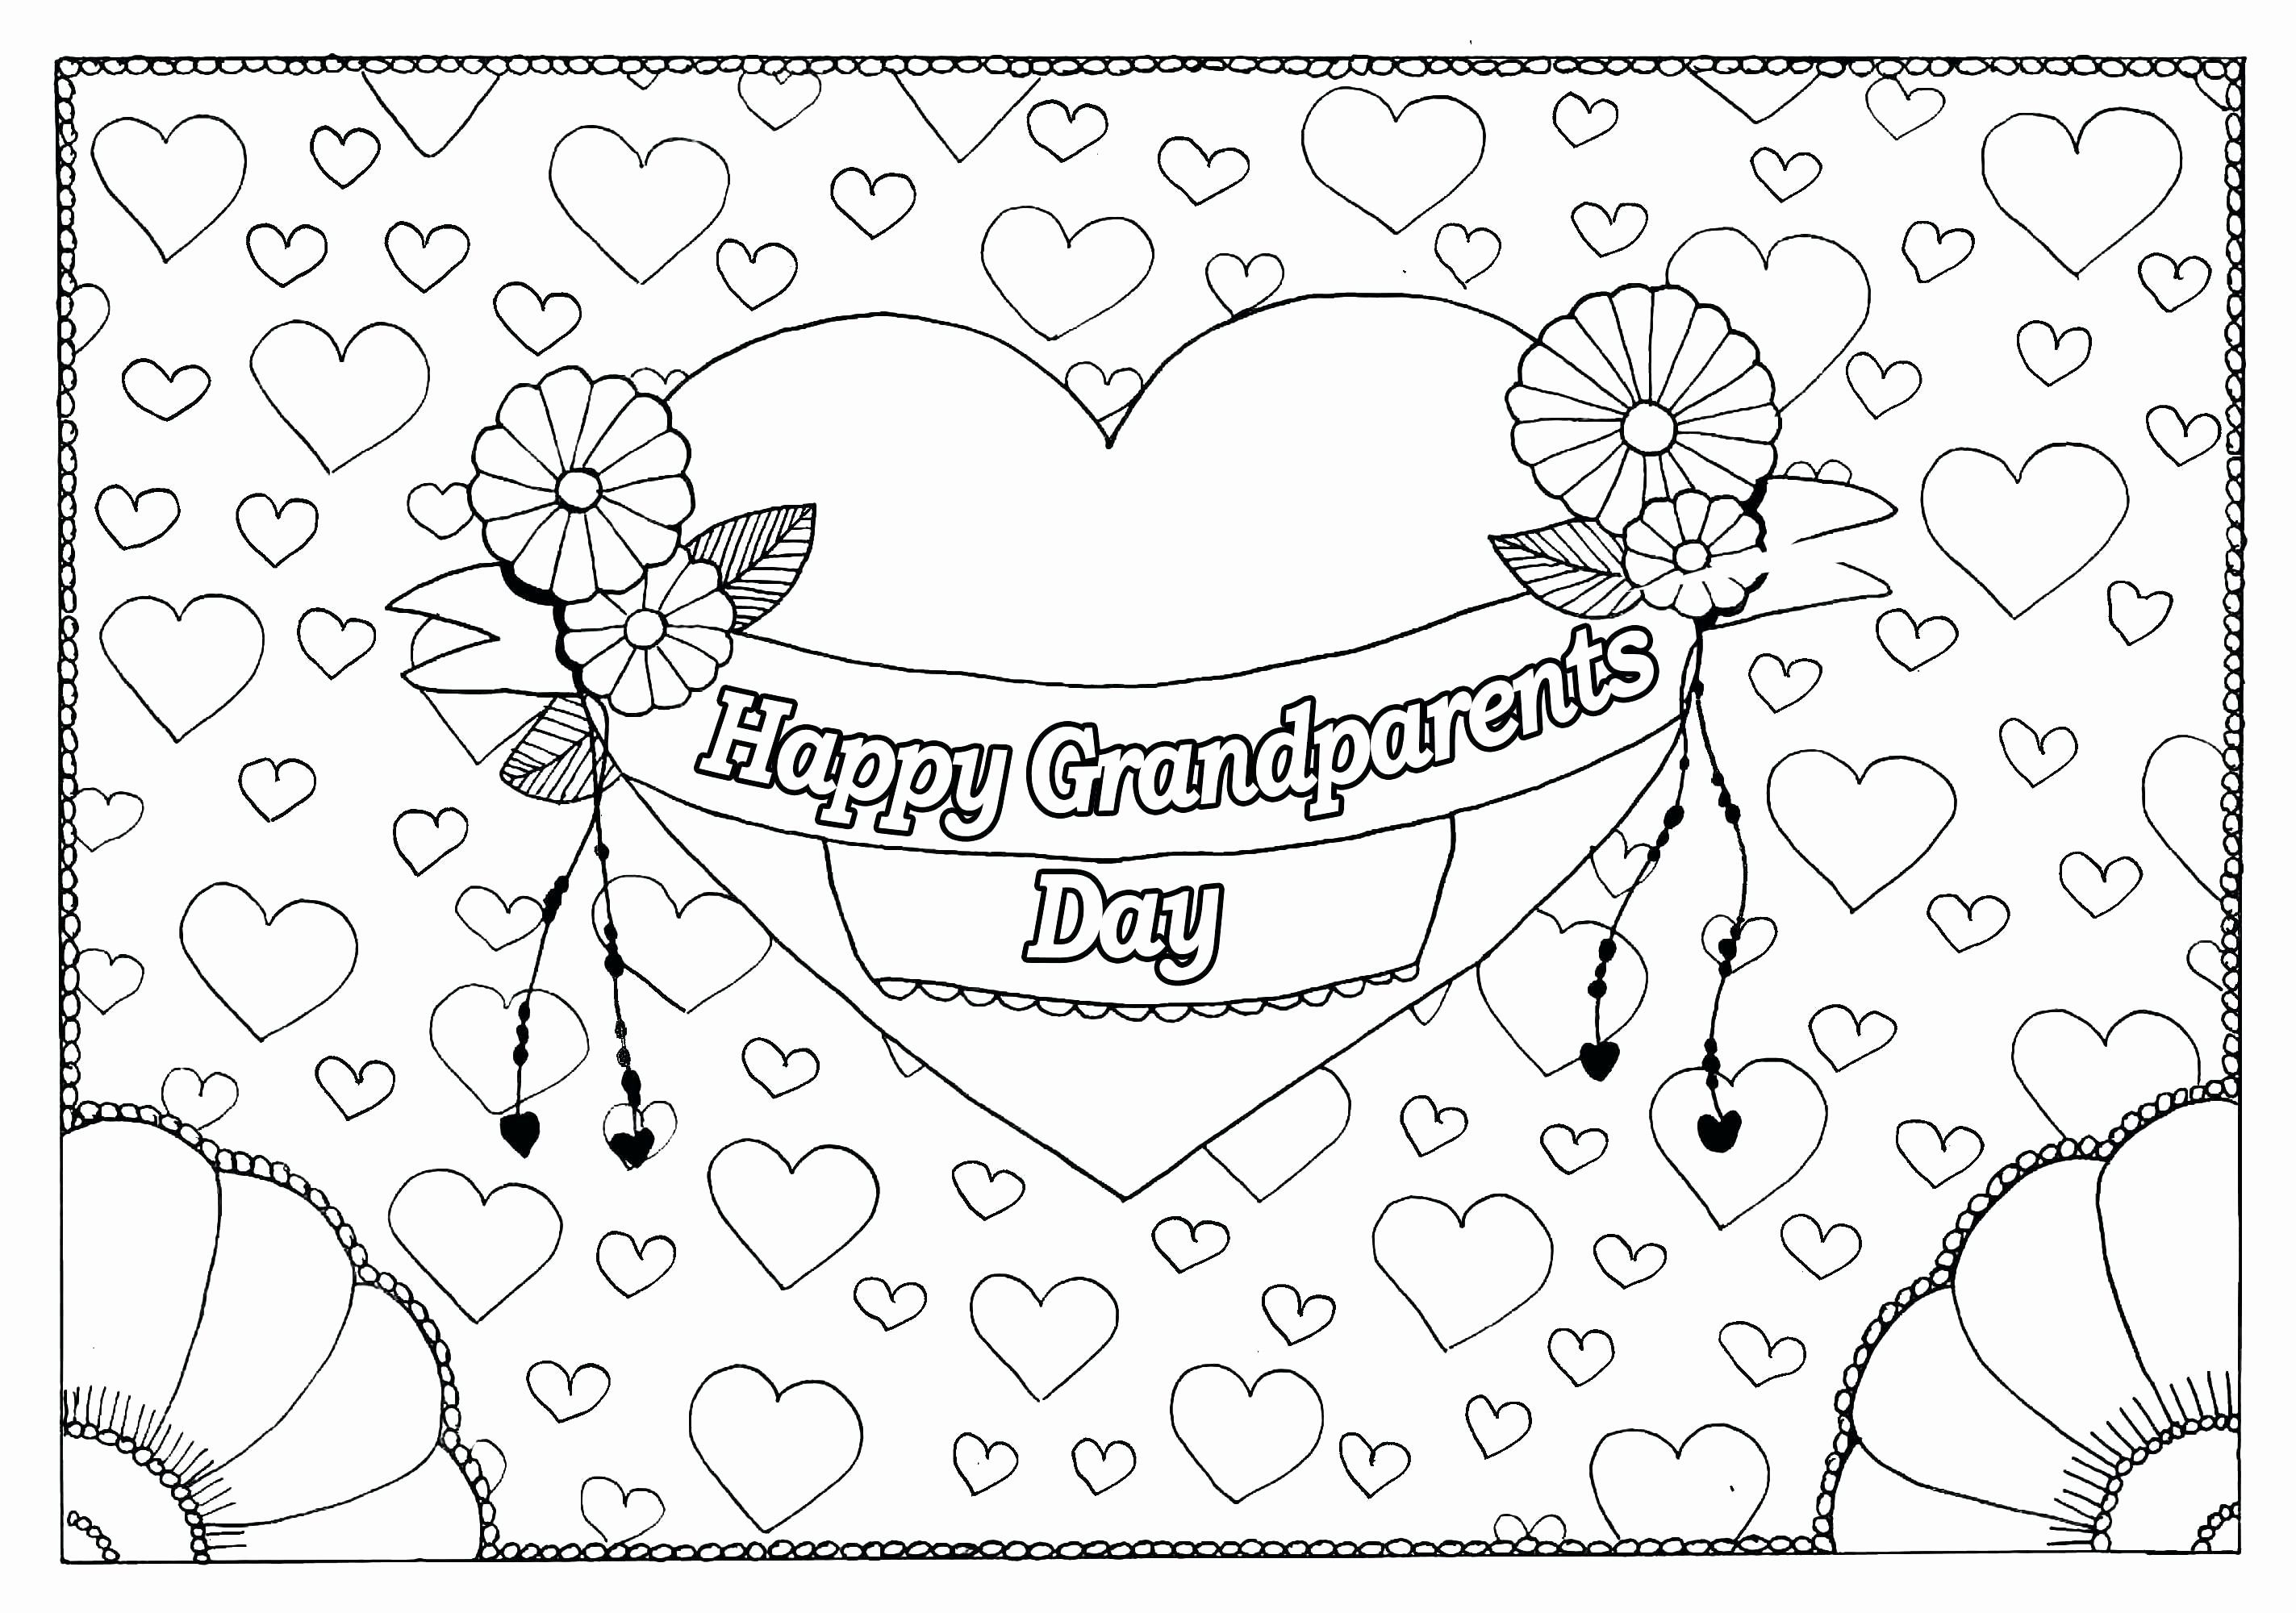 Mother Day Coloring Picture Elegant Grandparents Day Coloring Pages Navajosheet Birthday Coloring Pages Fathers Day Coloring Page Mothers Day Coloring Pages